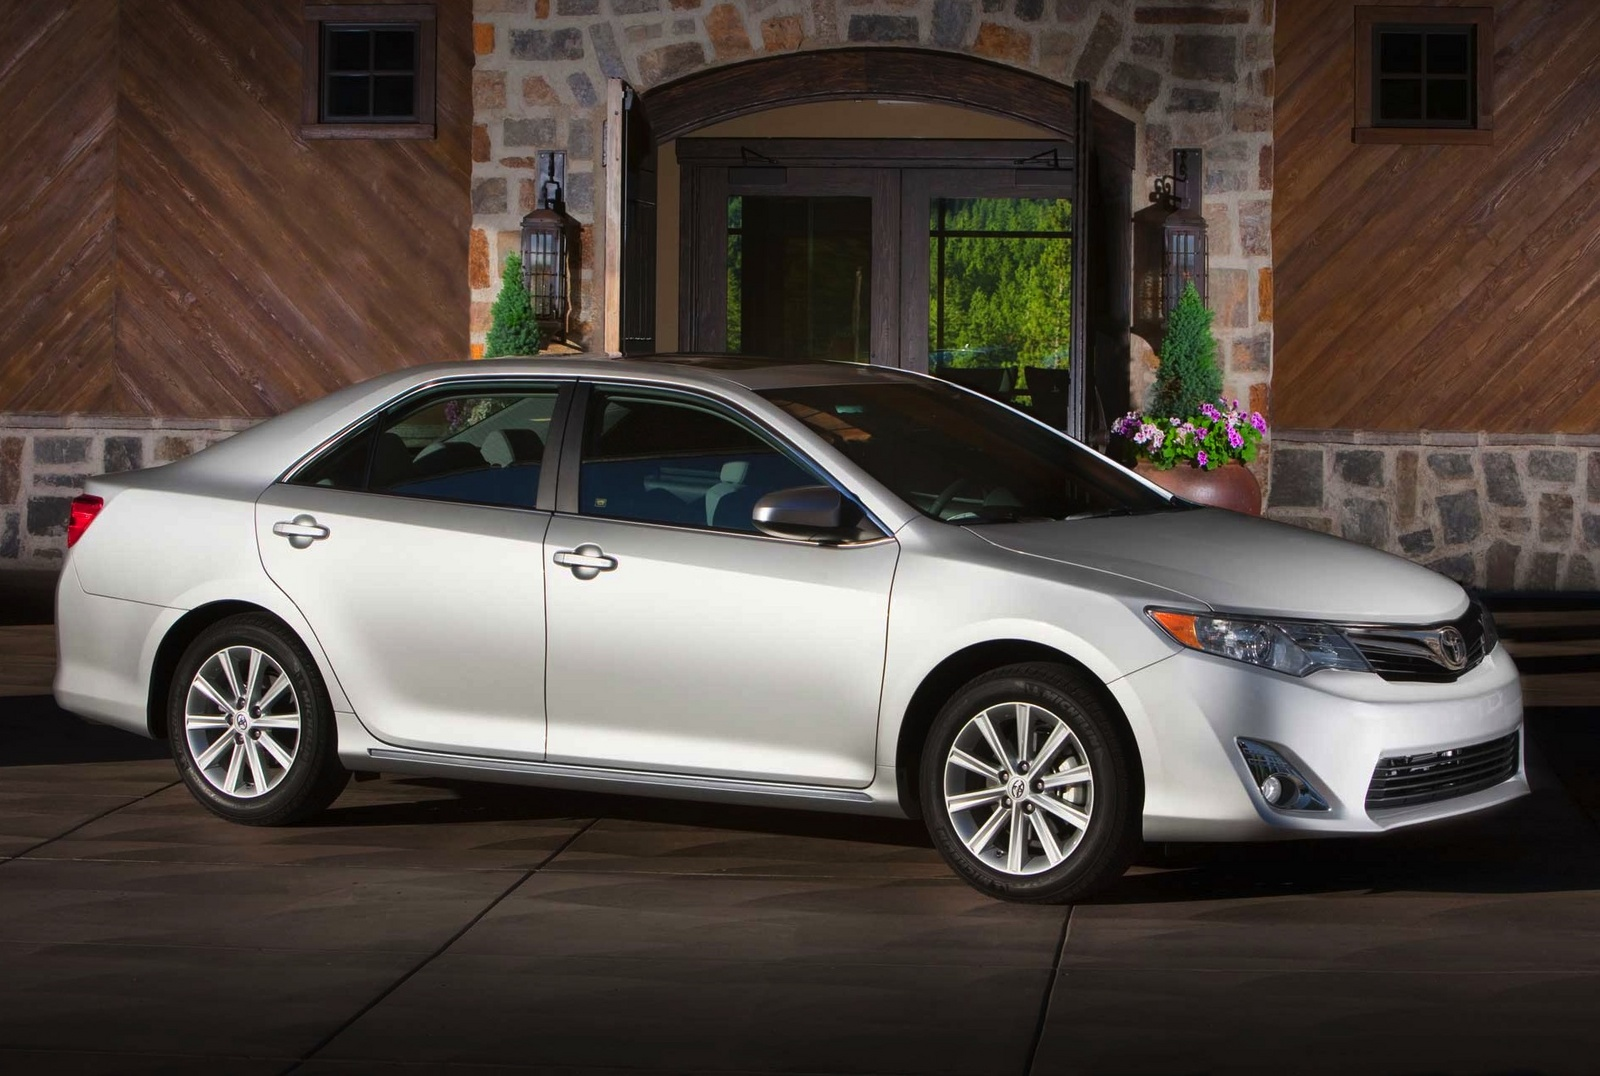 2014 Toyota Camry Photos Informations Articles With Bbs Rims 10